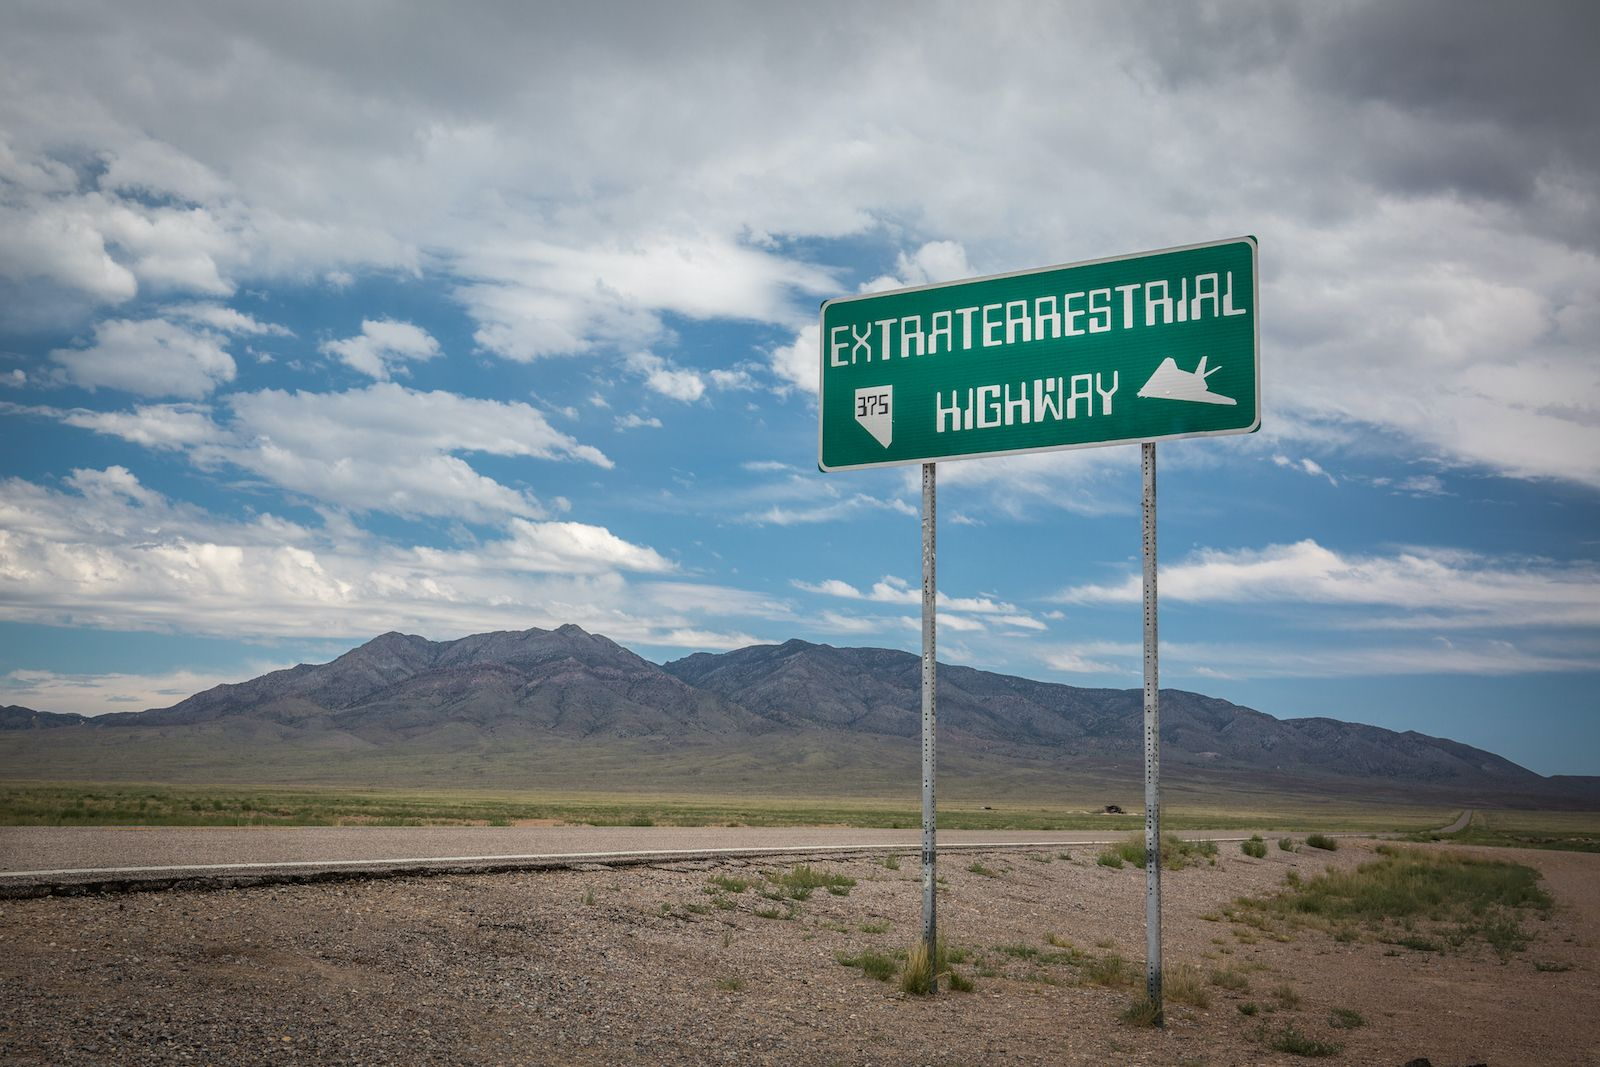 Nevada is made for road trips: Top 5 itineraries